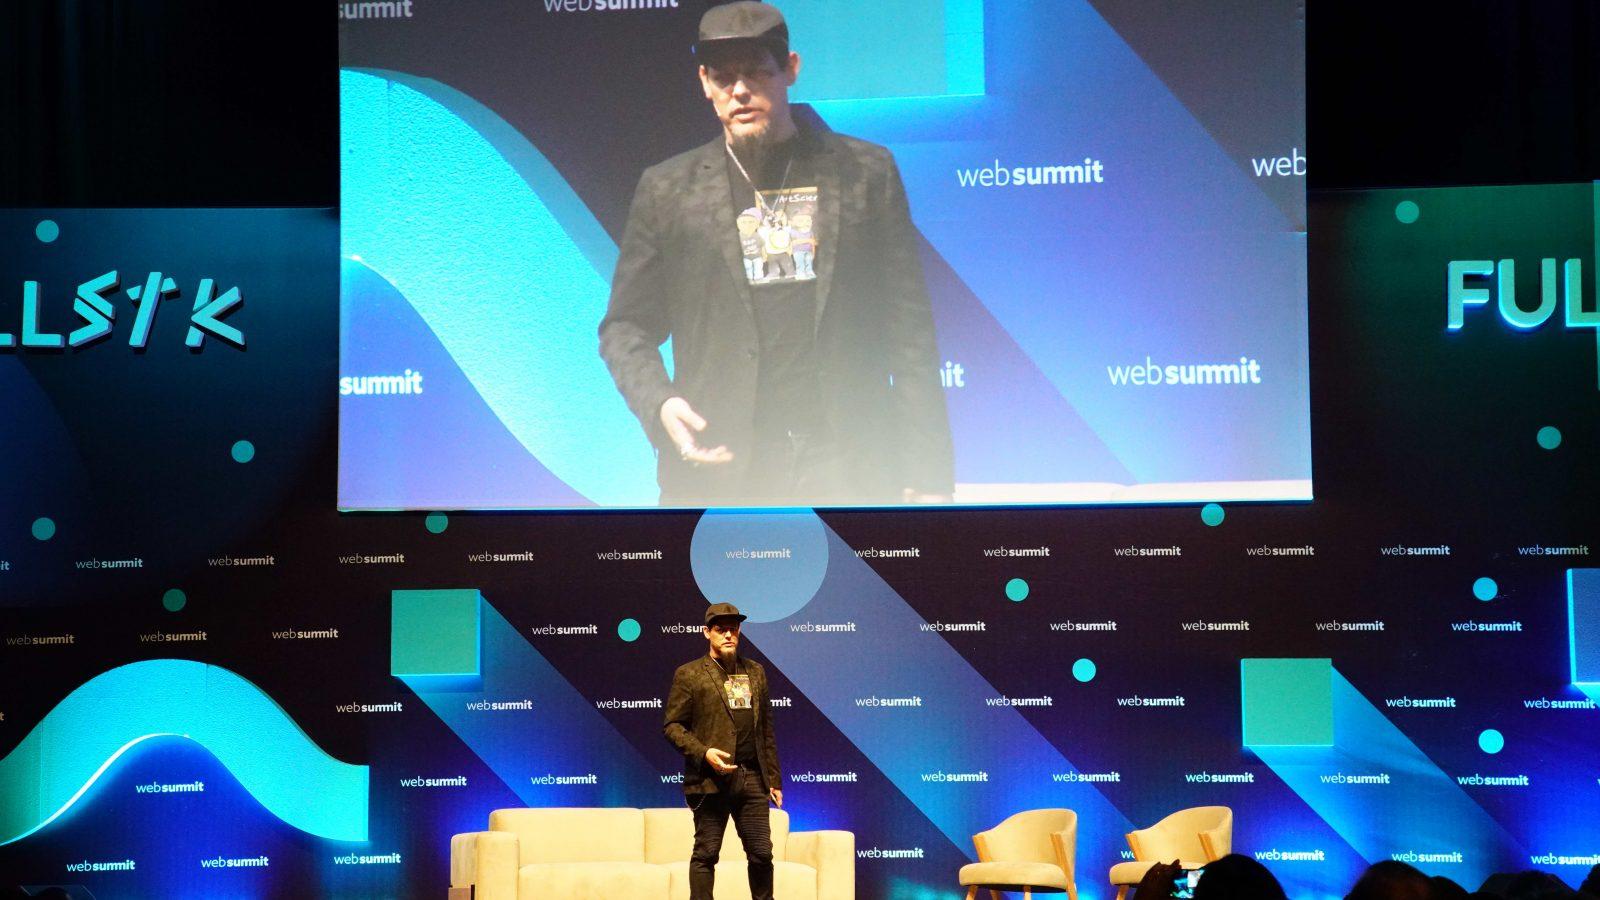 Web Summit 2017 Photos